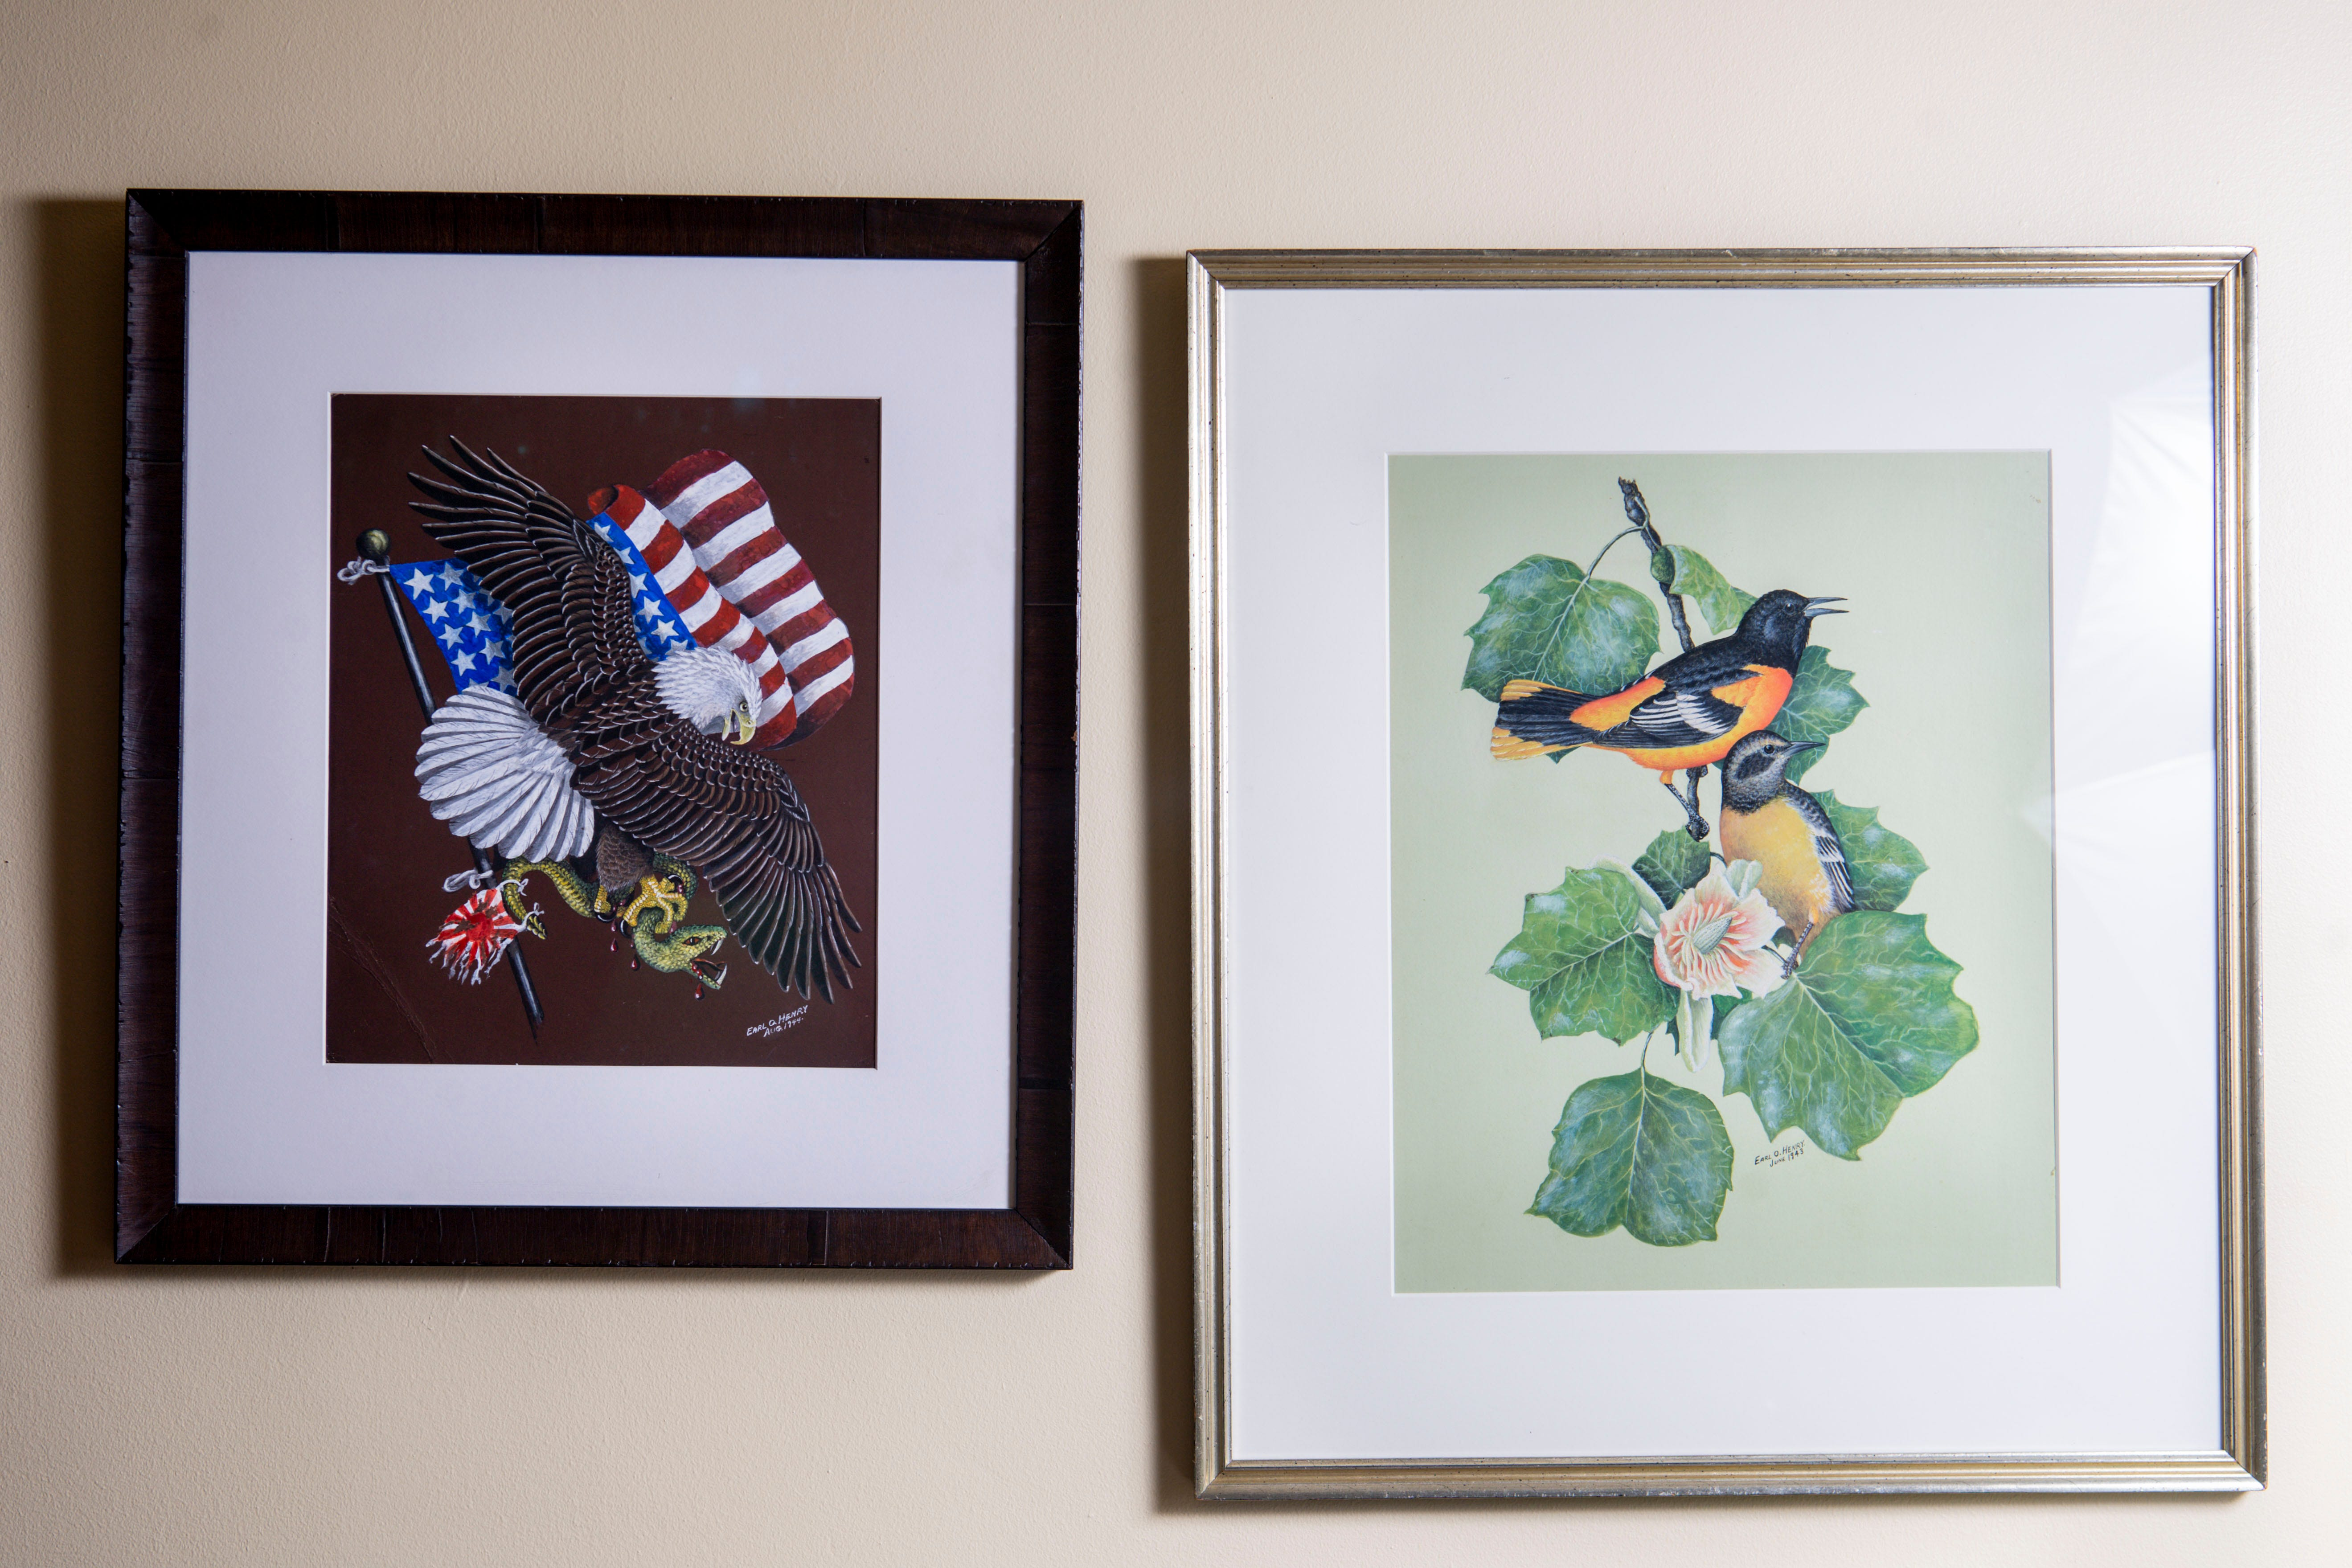 Paintings created by Earl Henry Sr. while he was serving in the Navy during World War II are seen on display in his son Earl Henry Jr.'s home in Belle Meade.